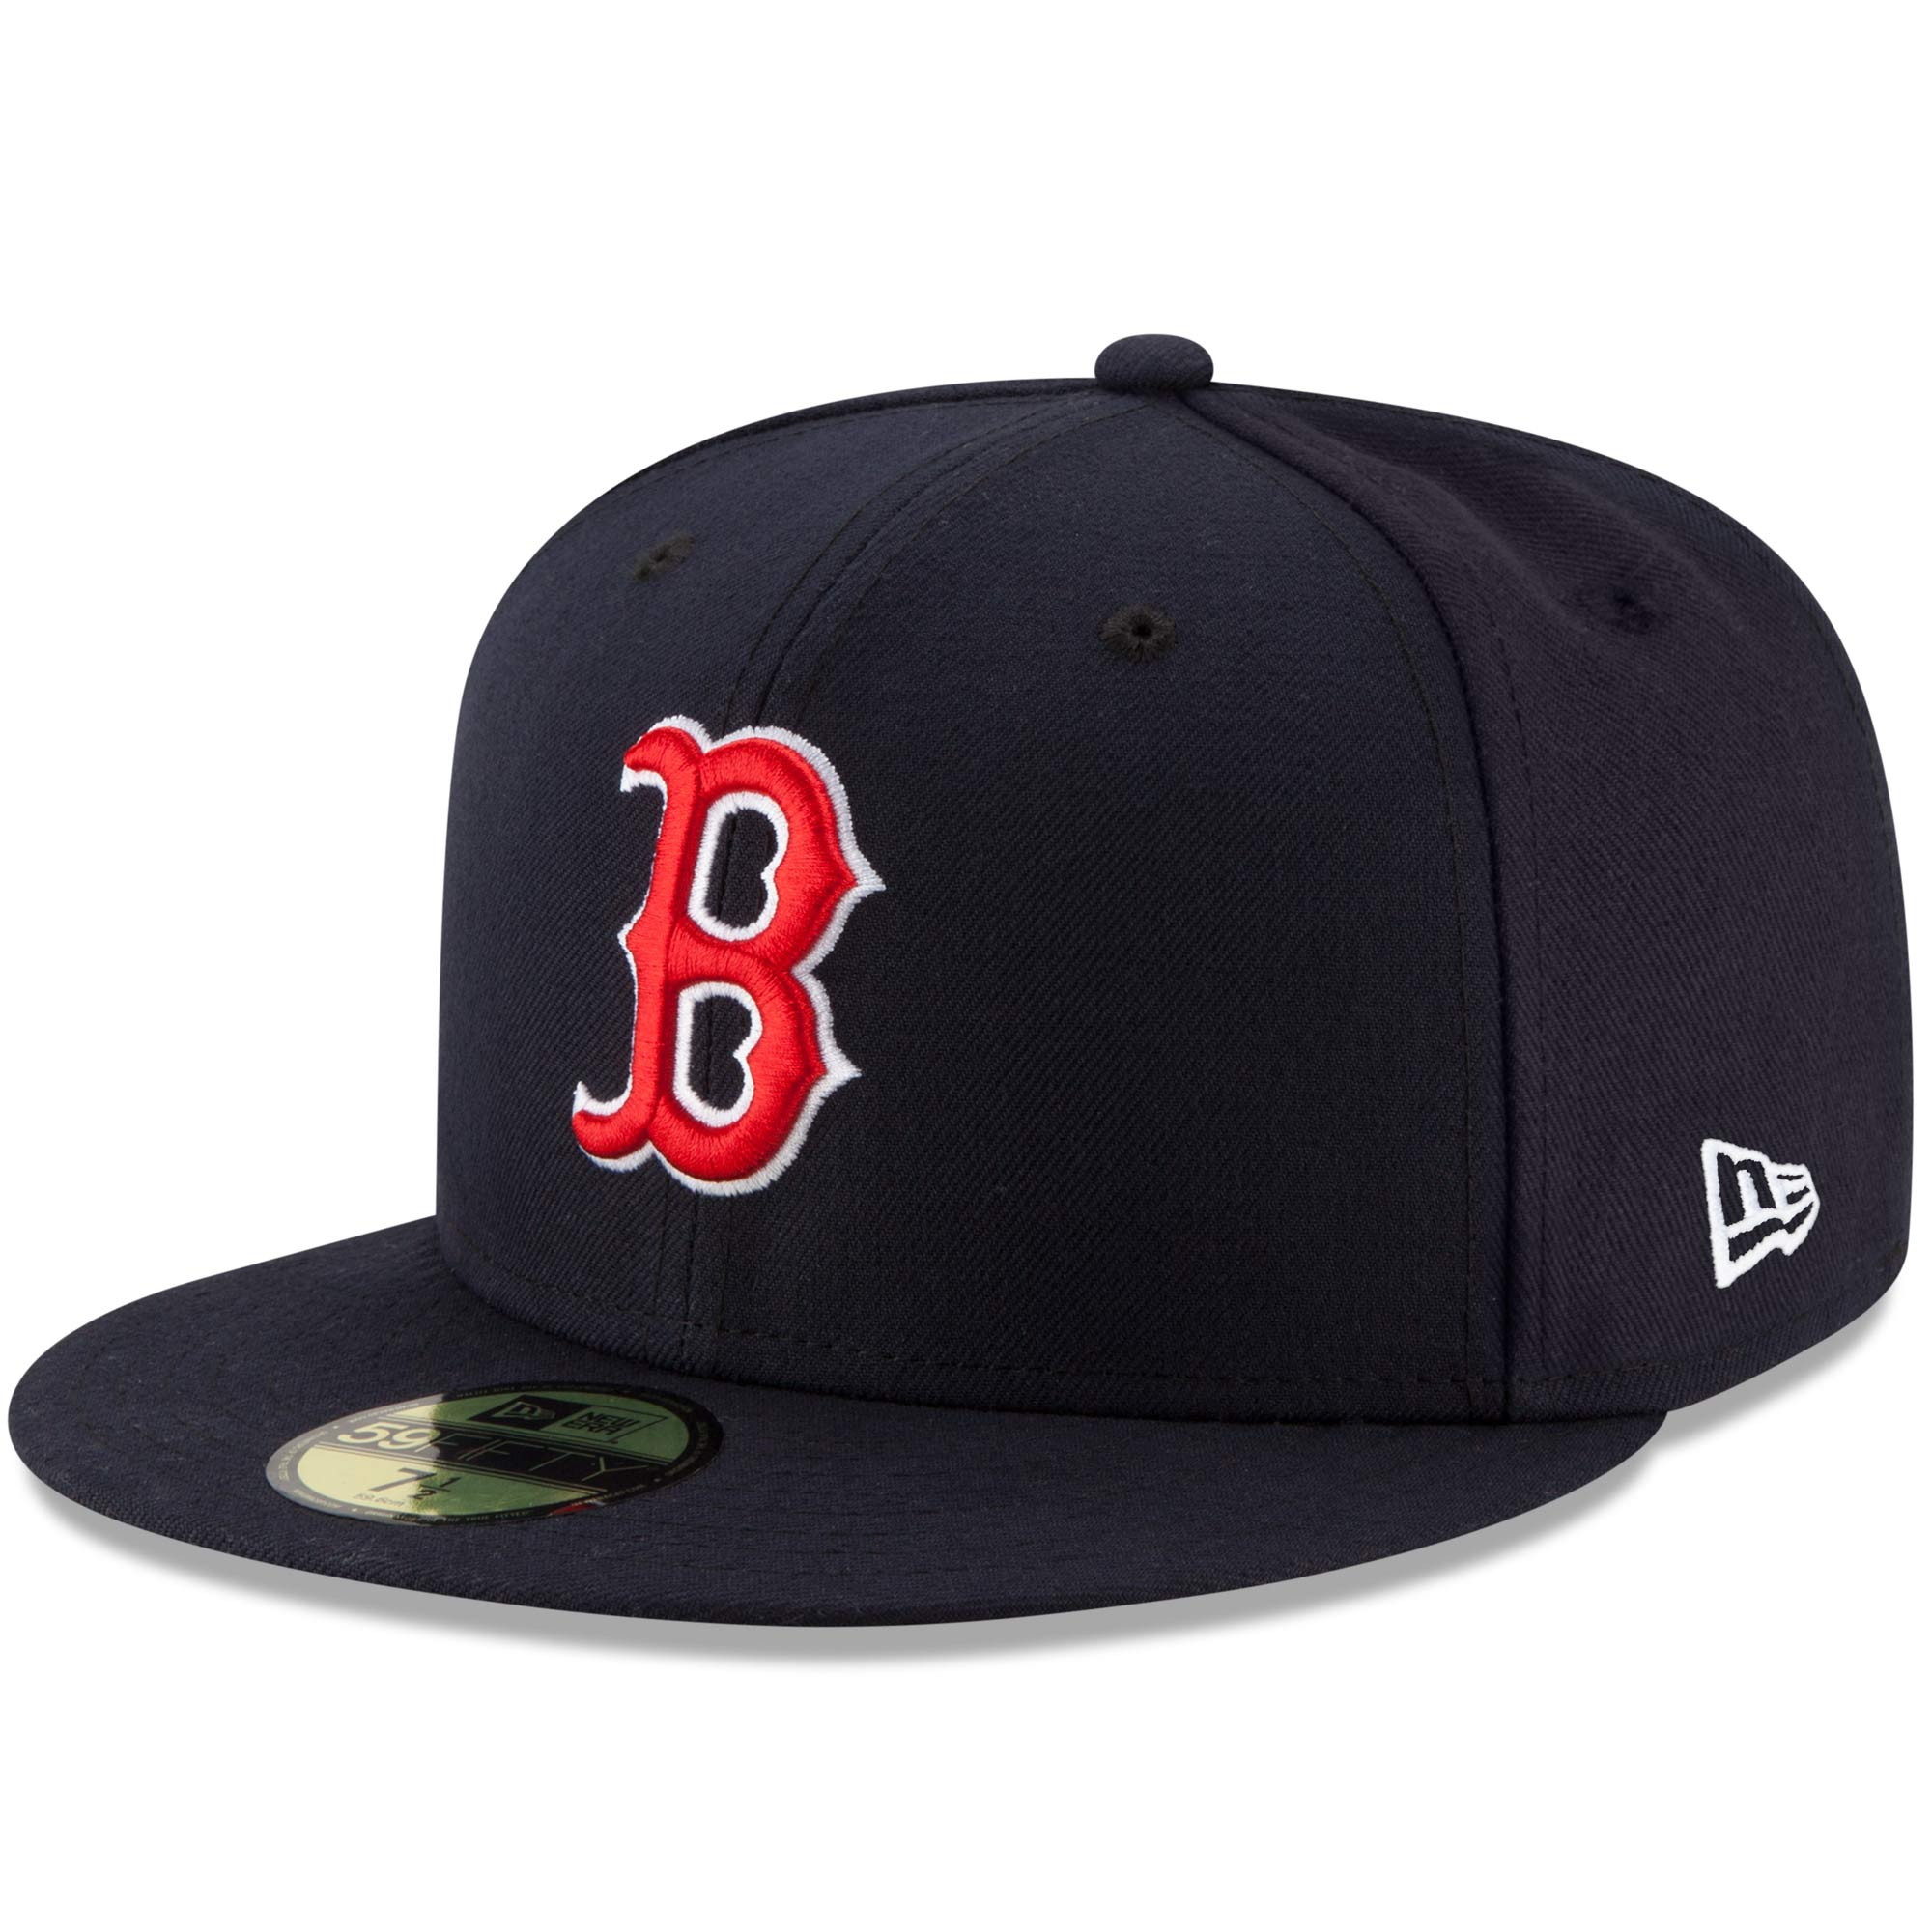 2f99fa2b Boston Red Sox Team Shop - Walmart.com